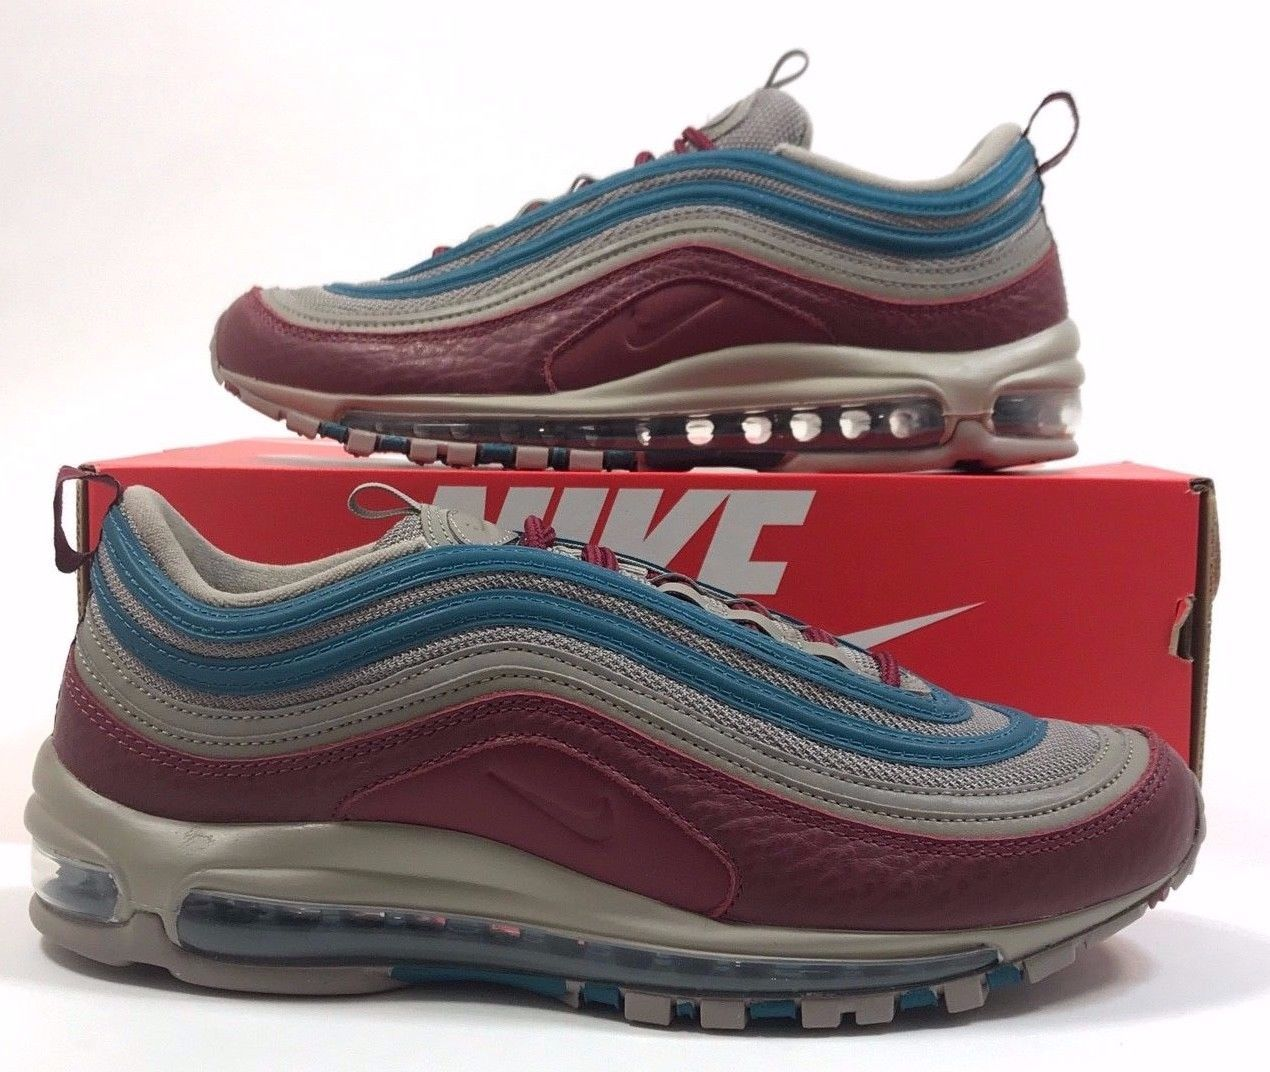 d9b1c00f7fd Details about Nike Air Max 97 SE Light Taupe Team Red AQ4126-202 ...